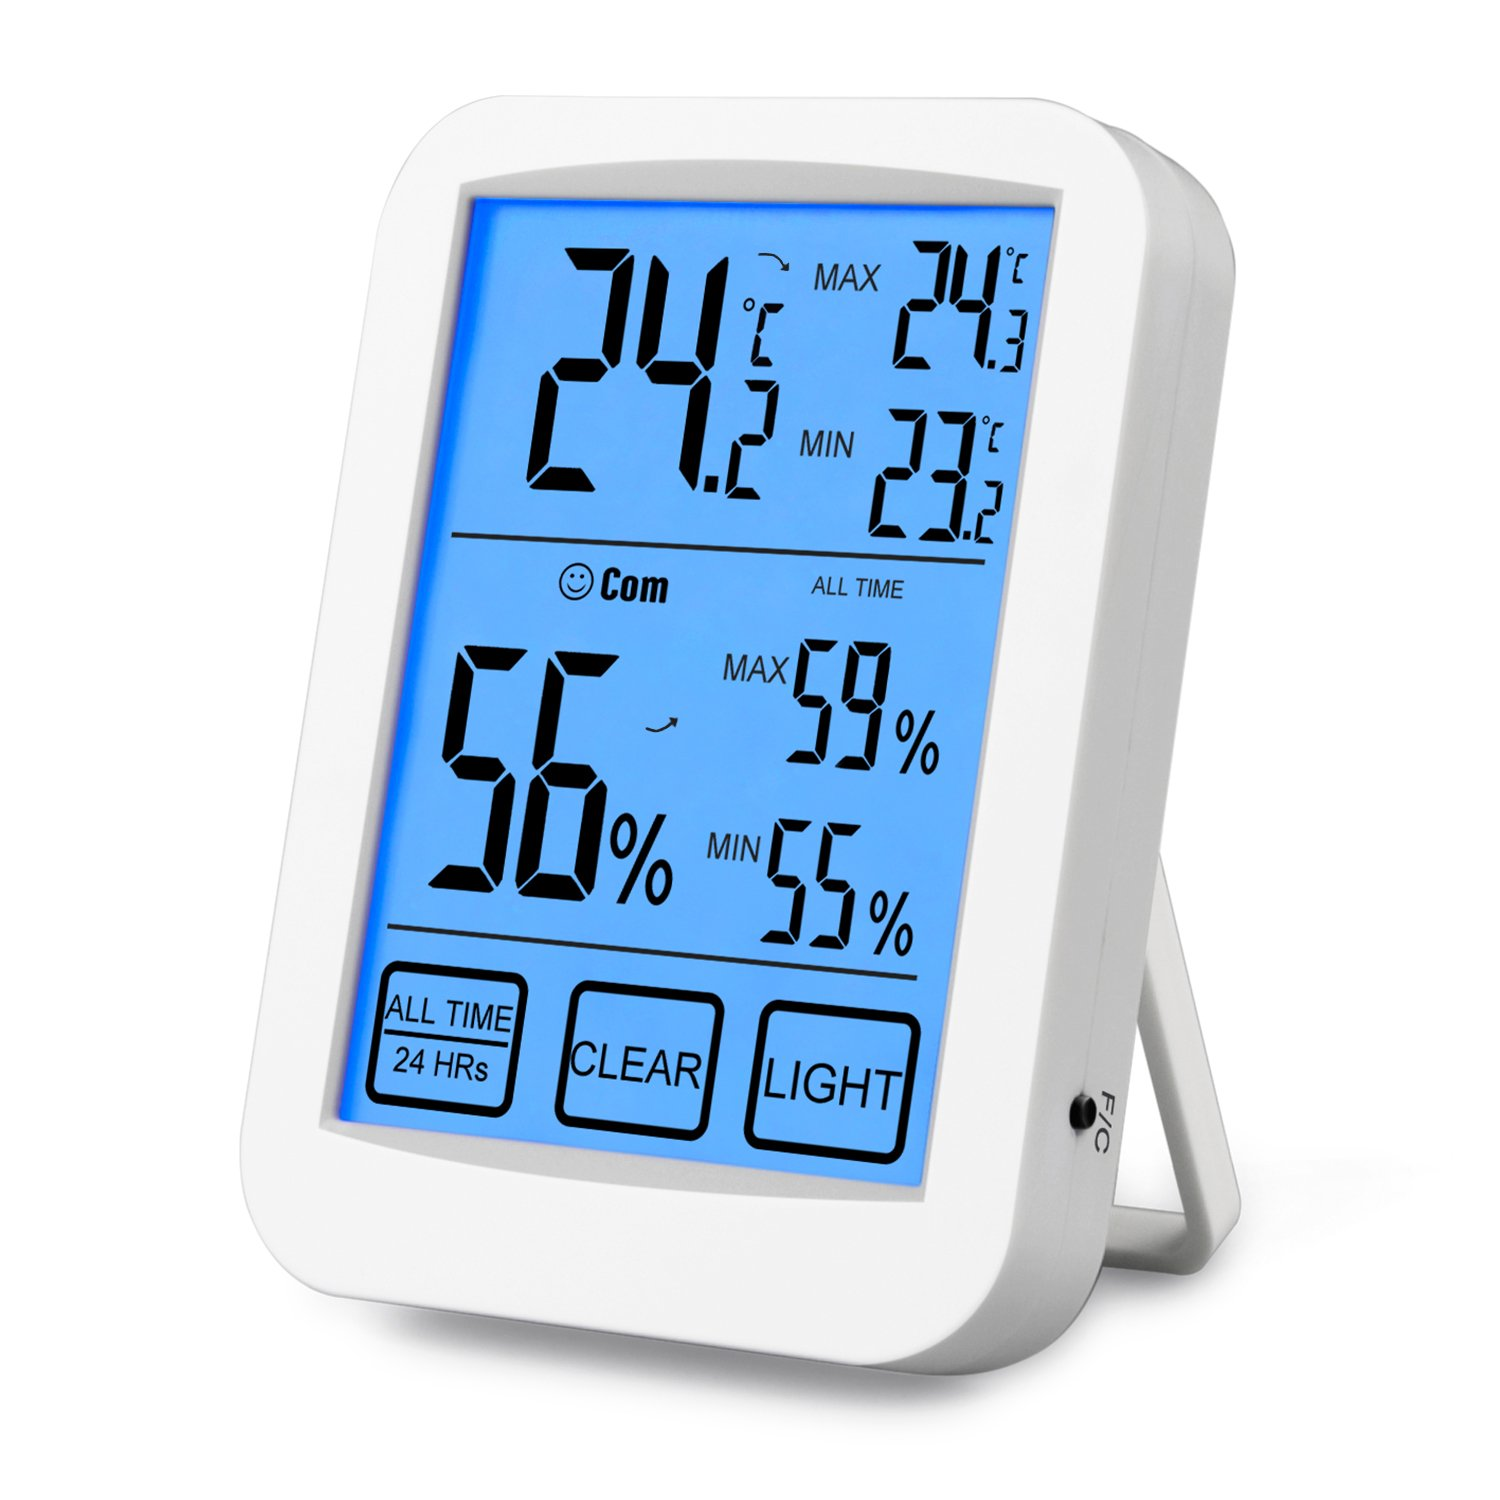 Digital Hygrometer Thermometer Indoor Thermo-hygrometer Monitor with Large LCD Display, Min/Max Records, Comfort Indicators, C/F Switch for Baby Room, Home, Office, Hospital,Greenhouse,Warehouse NeKan